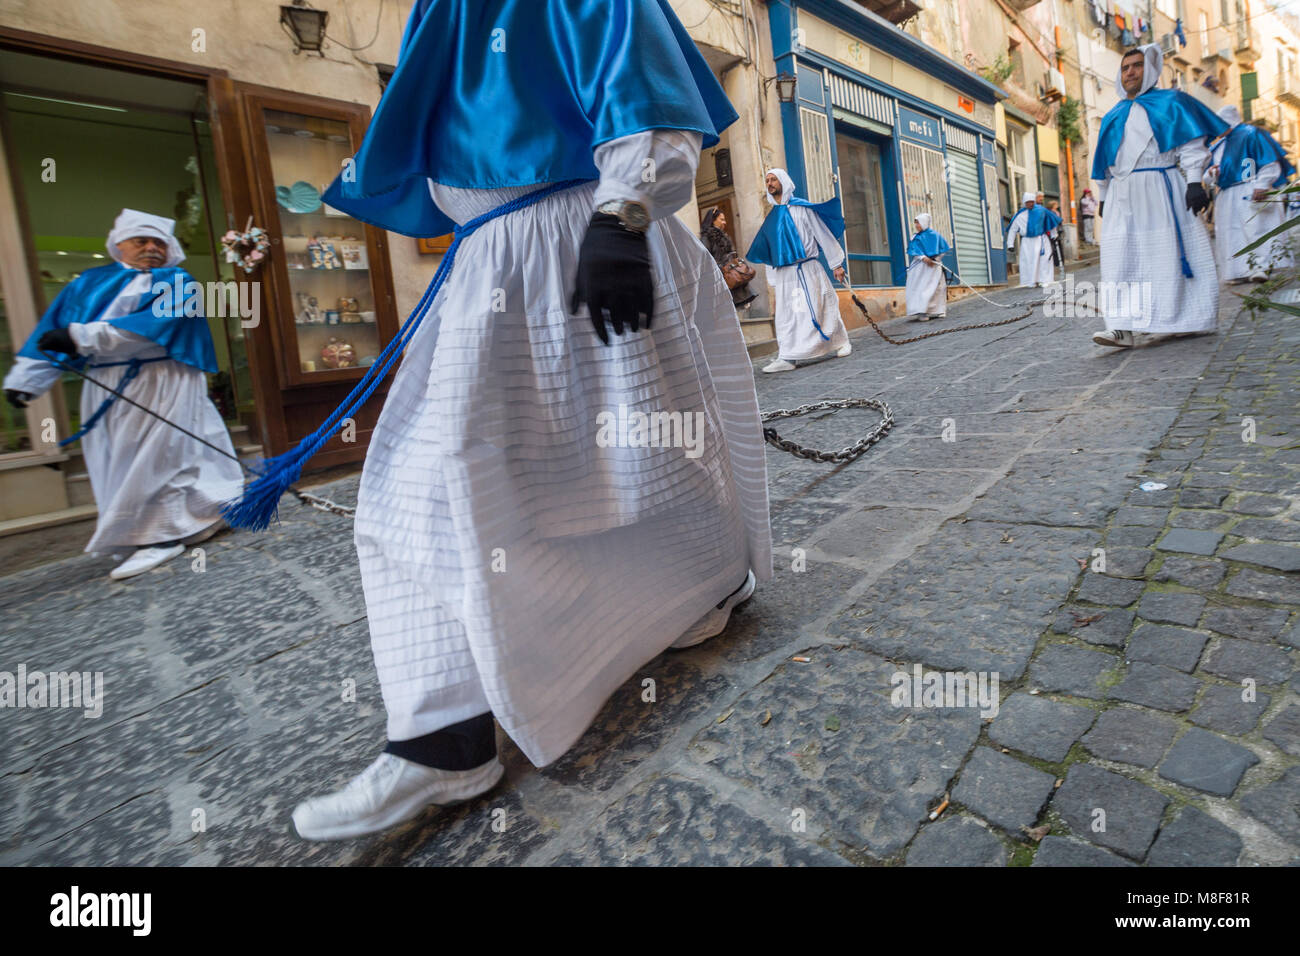 PROCIDA, ITALY - MARCH 25, 2016 - Some Turchini Brothers walk on the cobbled paving dragging chains during the Procida's - Stock Image